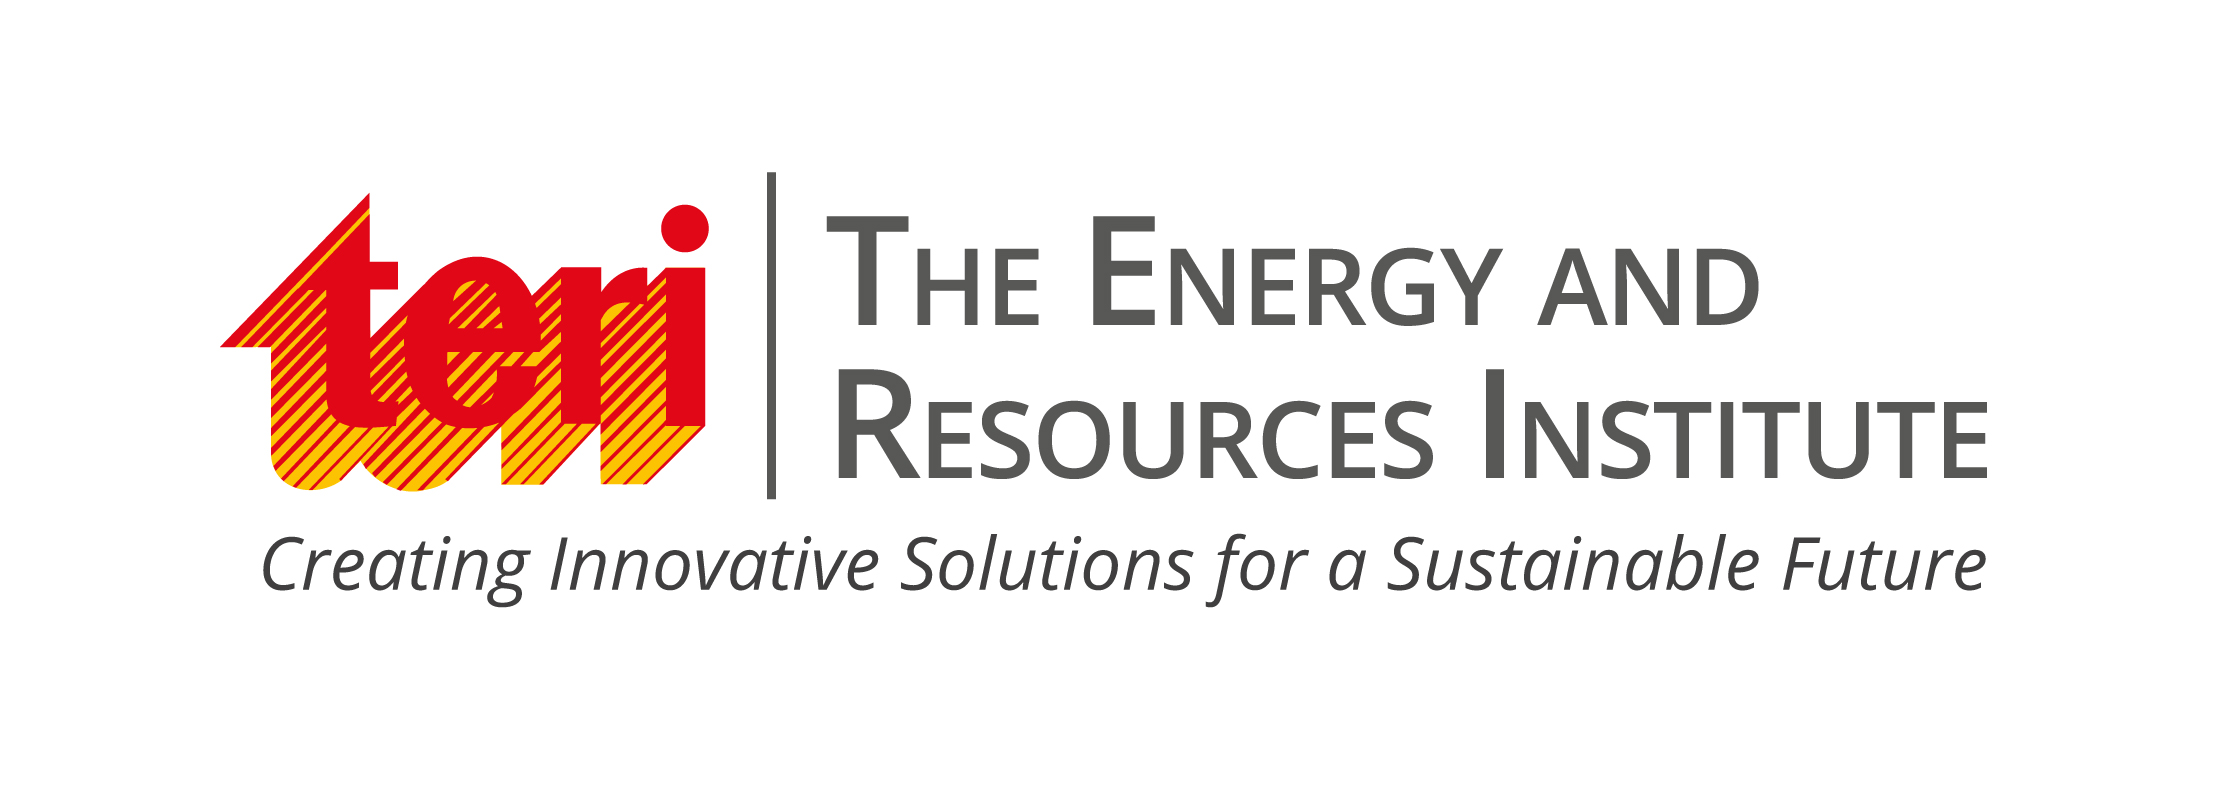 the-energy-and-resources-institute-teri